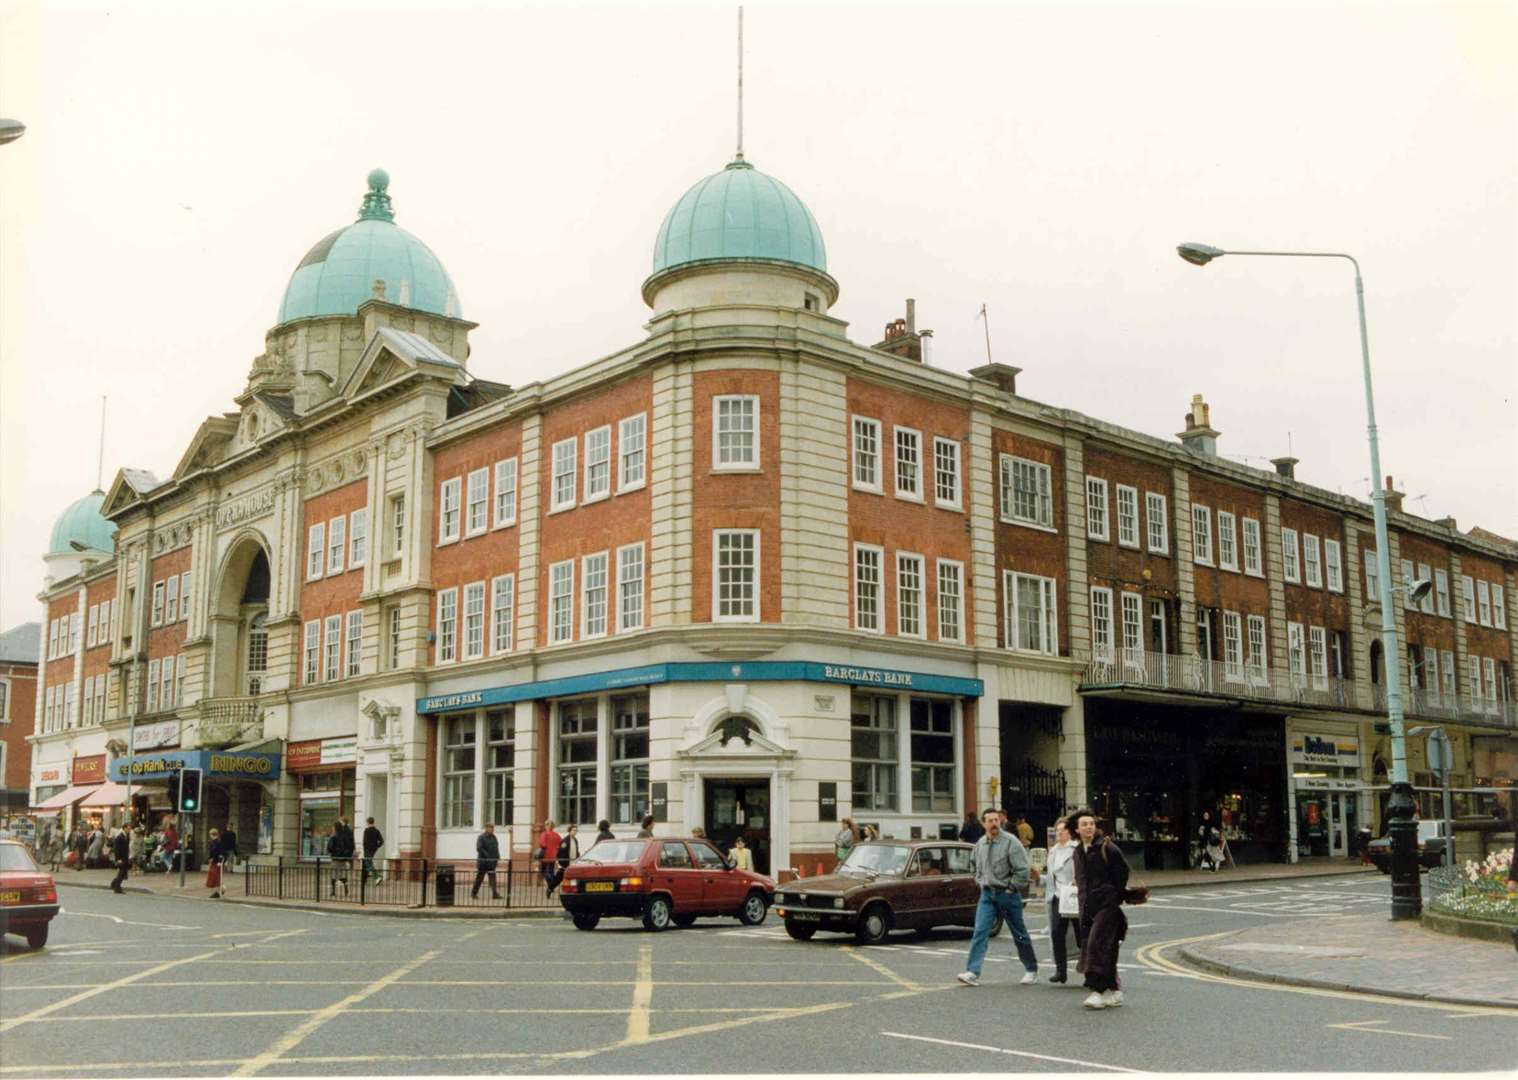 Opera House, Tunbridge Wells, pictured in April, 1992